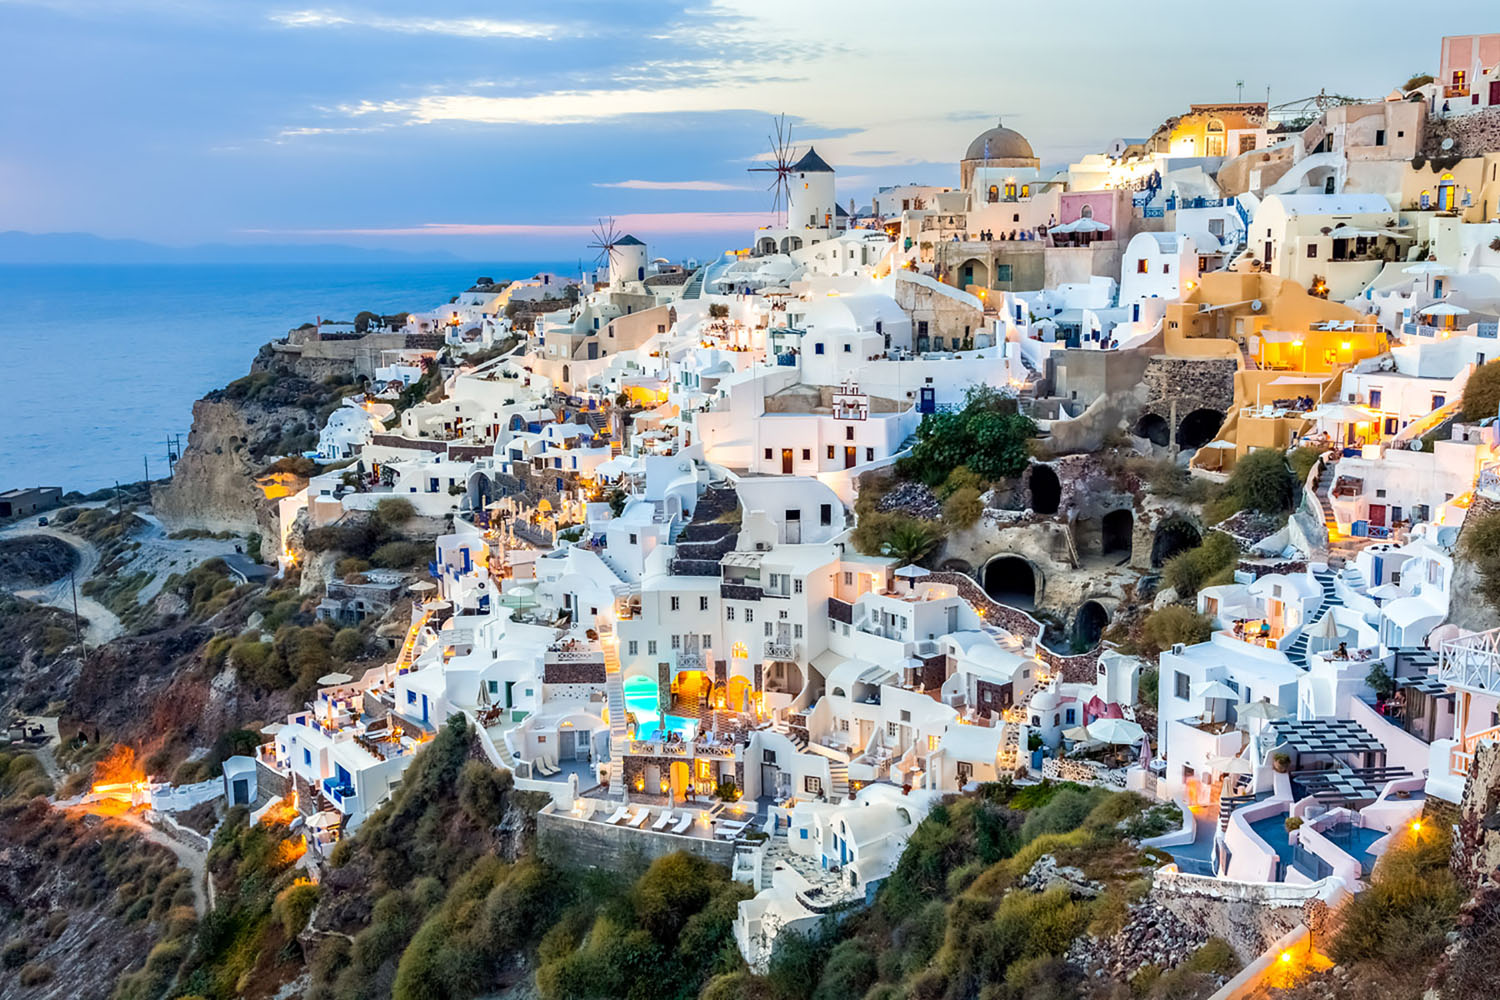 Santorini, Greece is home to both breathtaking views and ancient ruins.